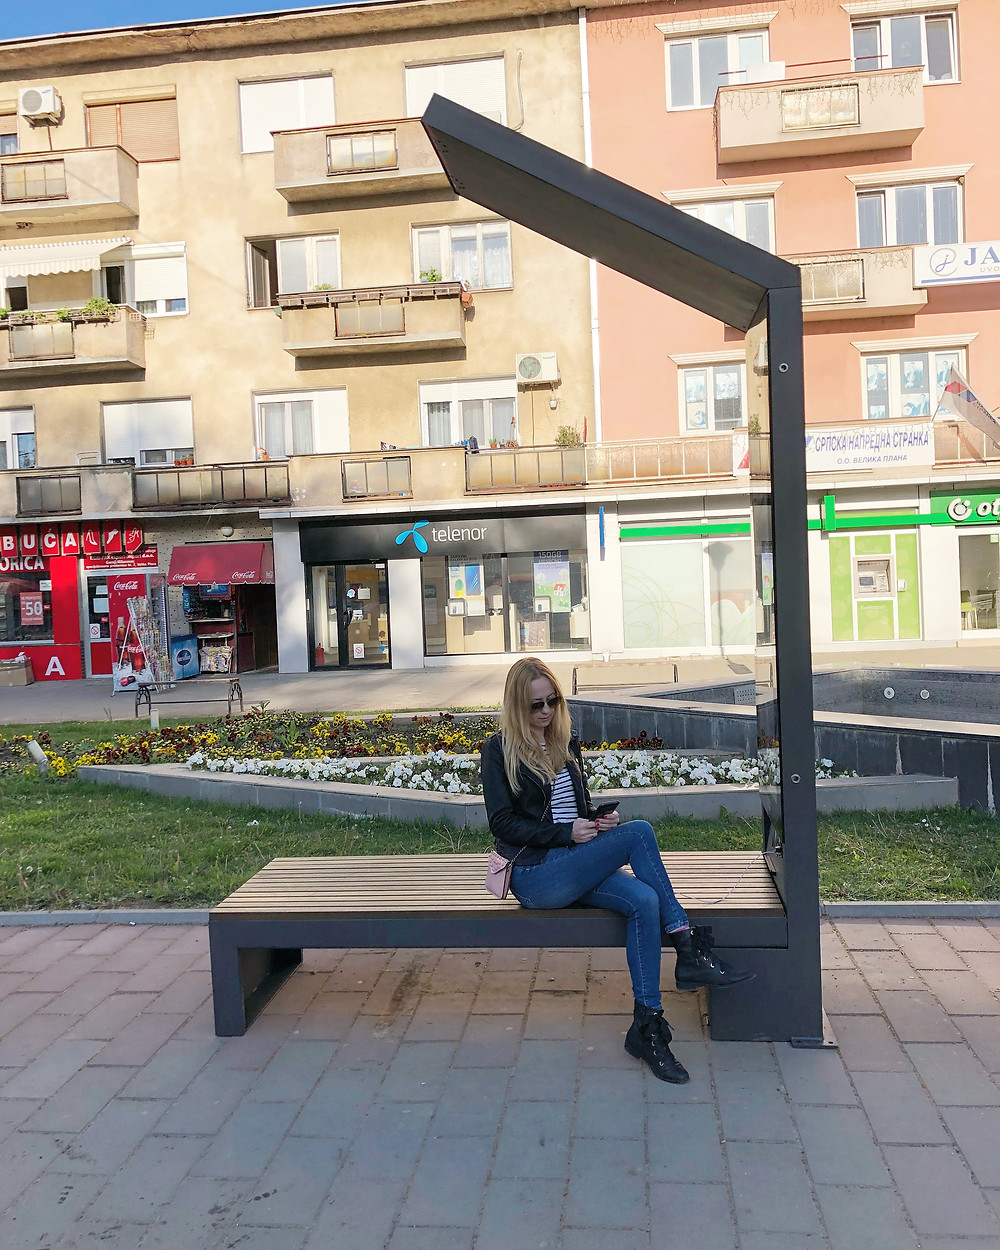 smart solar powered bench design